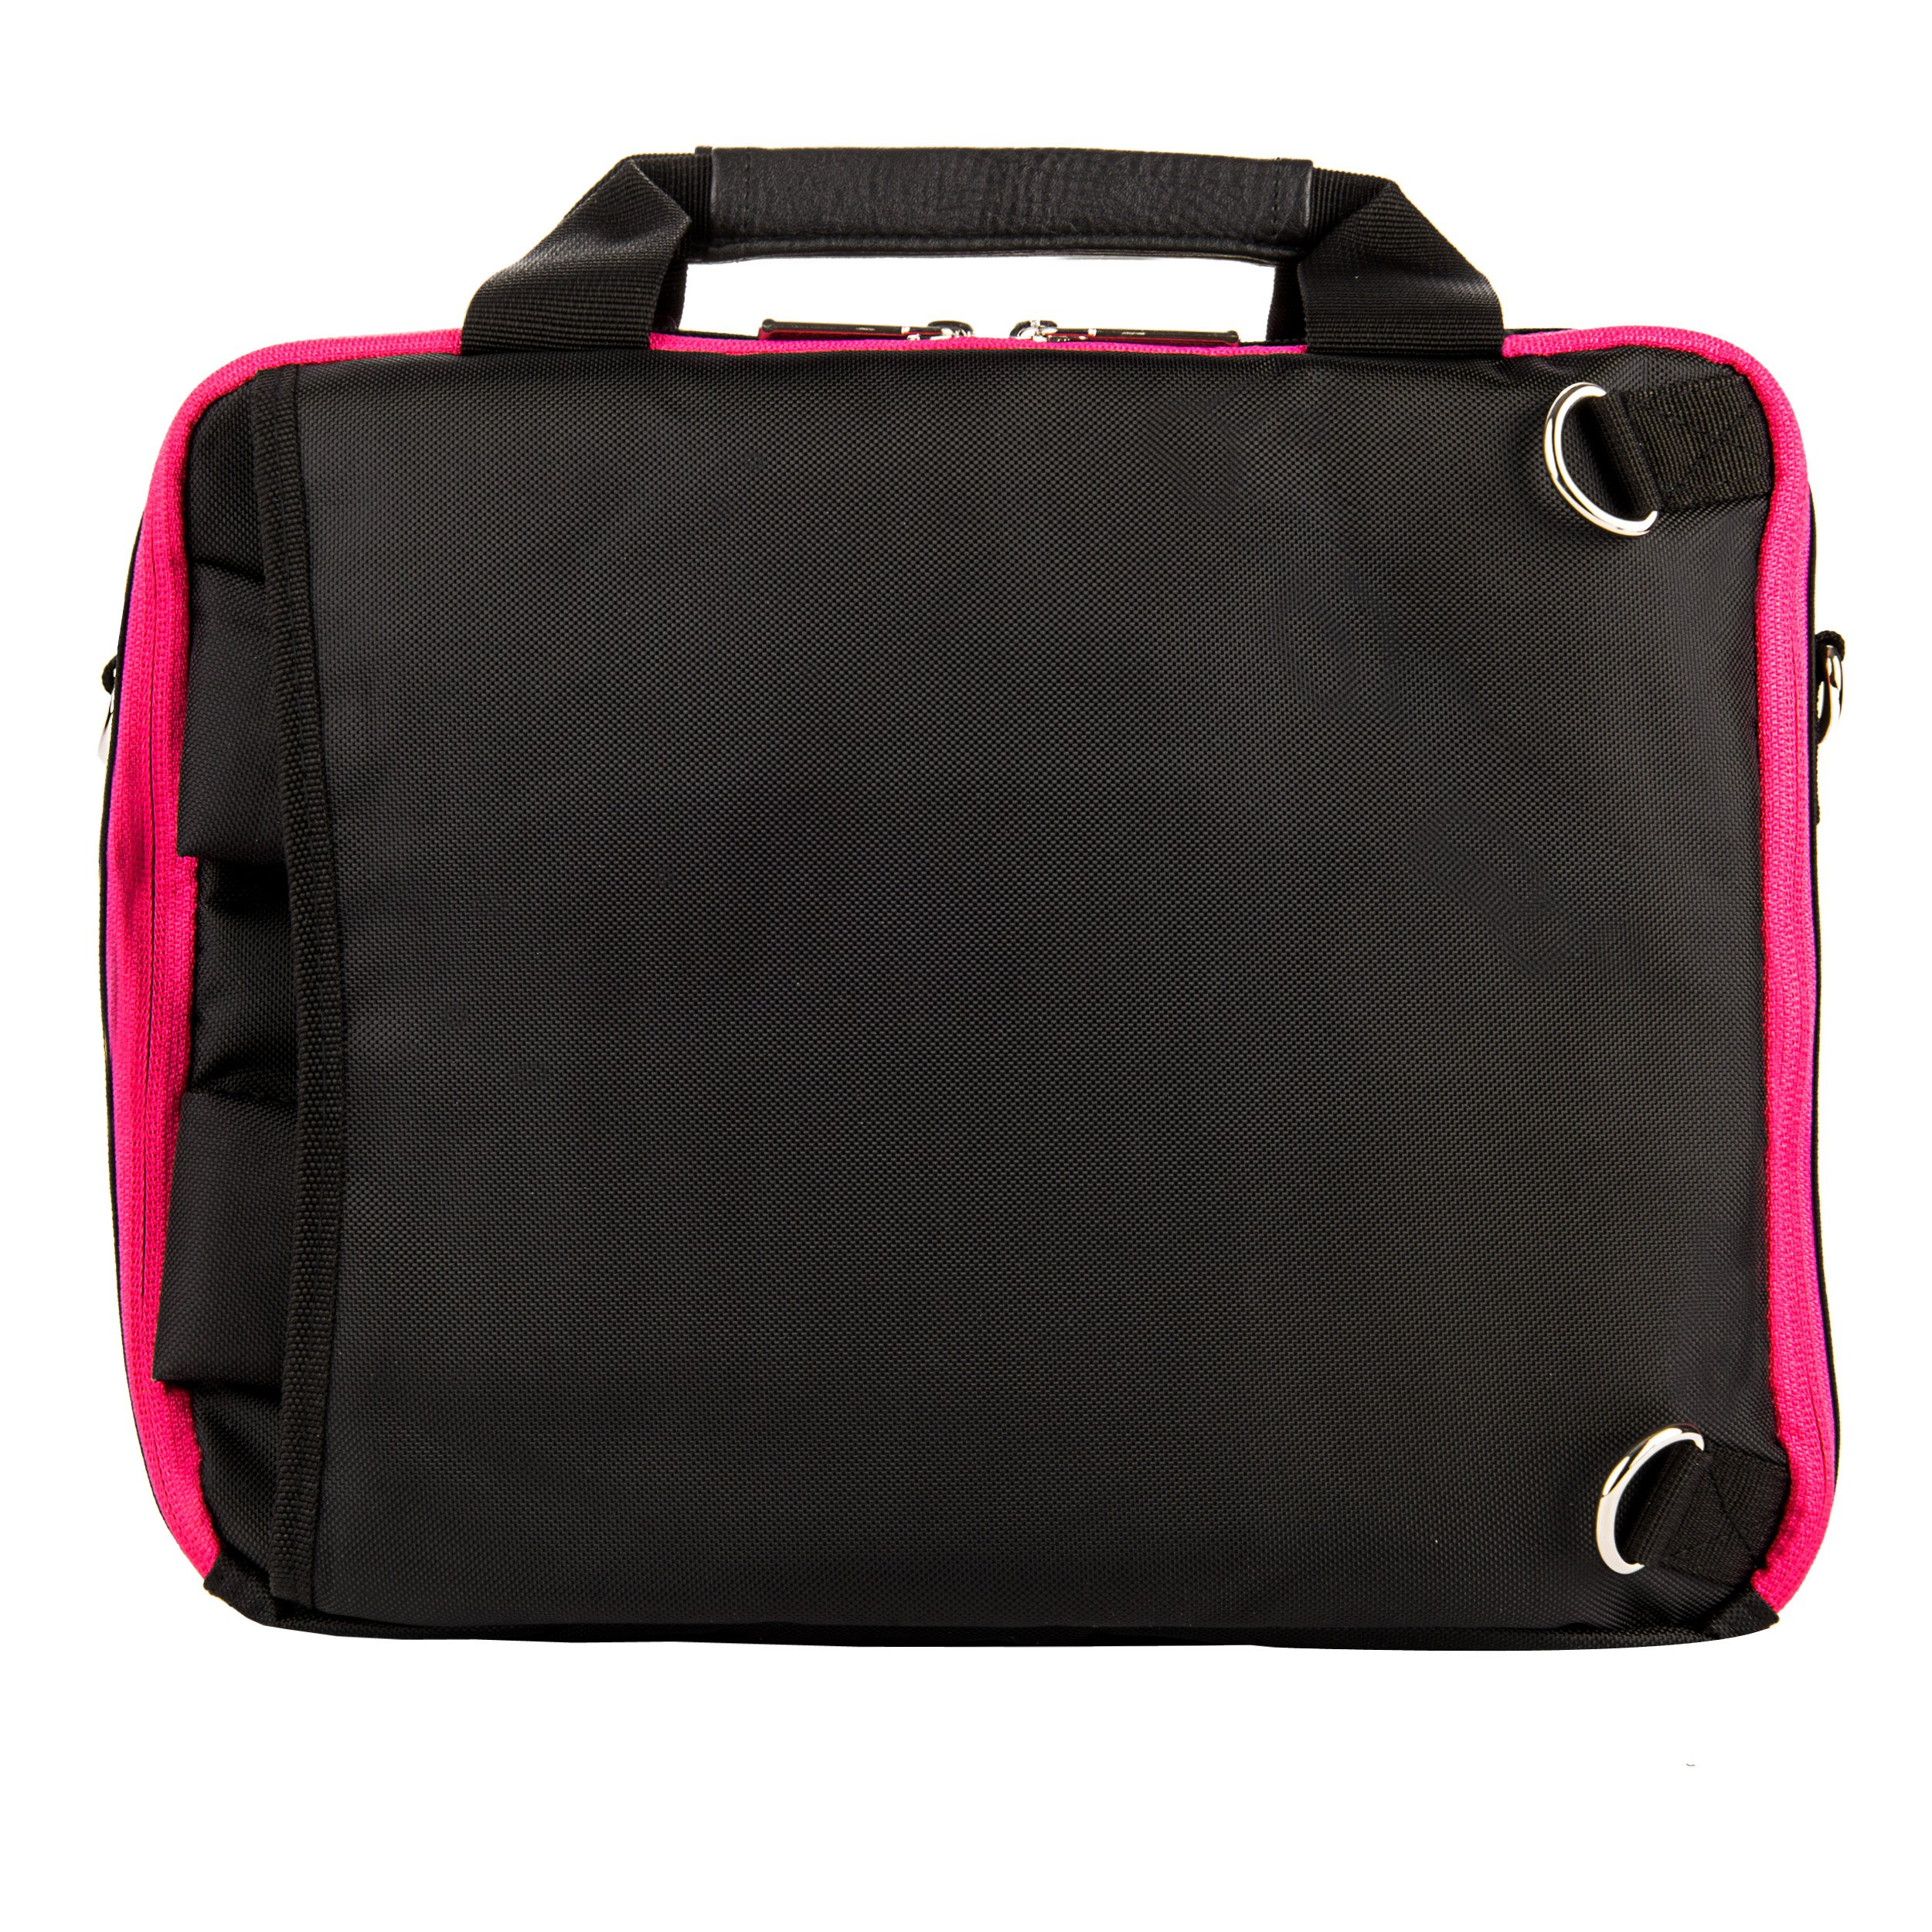 Executive Travel Carrying Bag, Messenger Bag & Backpack For Samsung Galaxy Tab PRO / Galaxy Note PRO 12.2'' Tablet + Pink Bluetooth Suction Speaker by Vangoddy (Image #3)